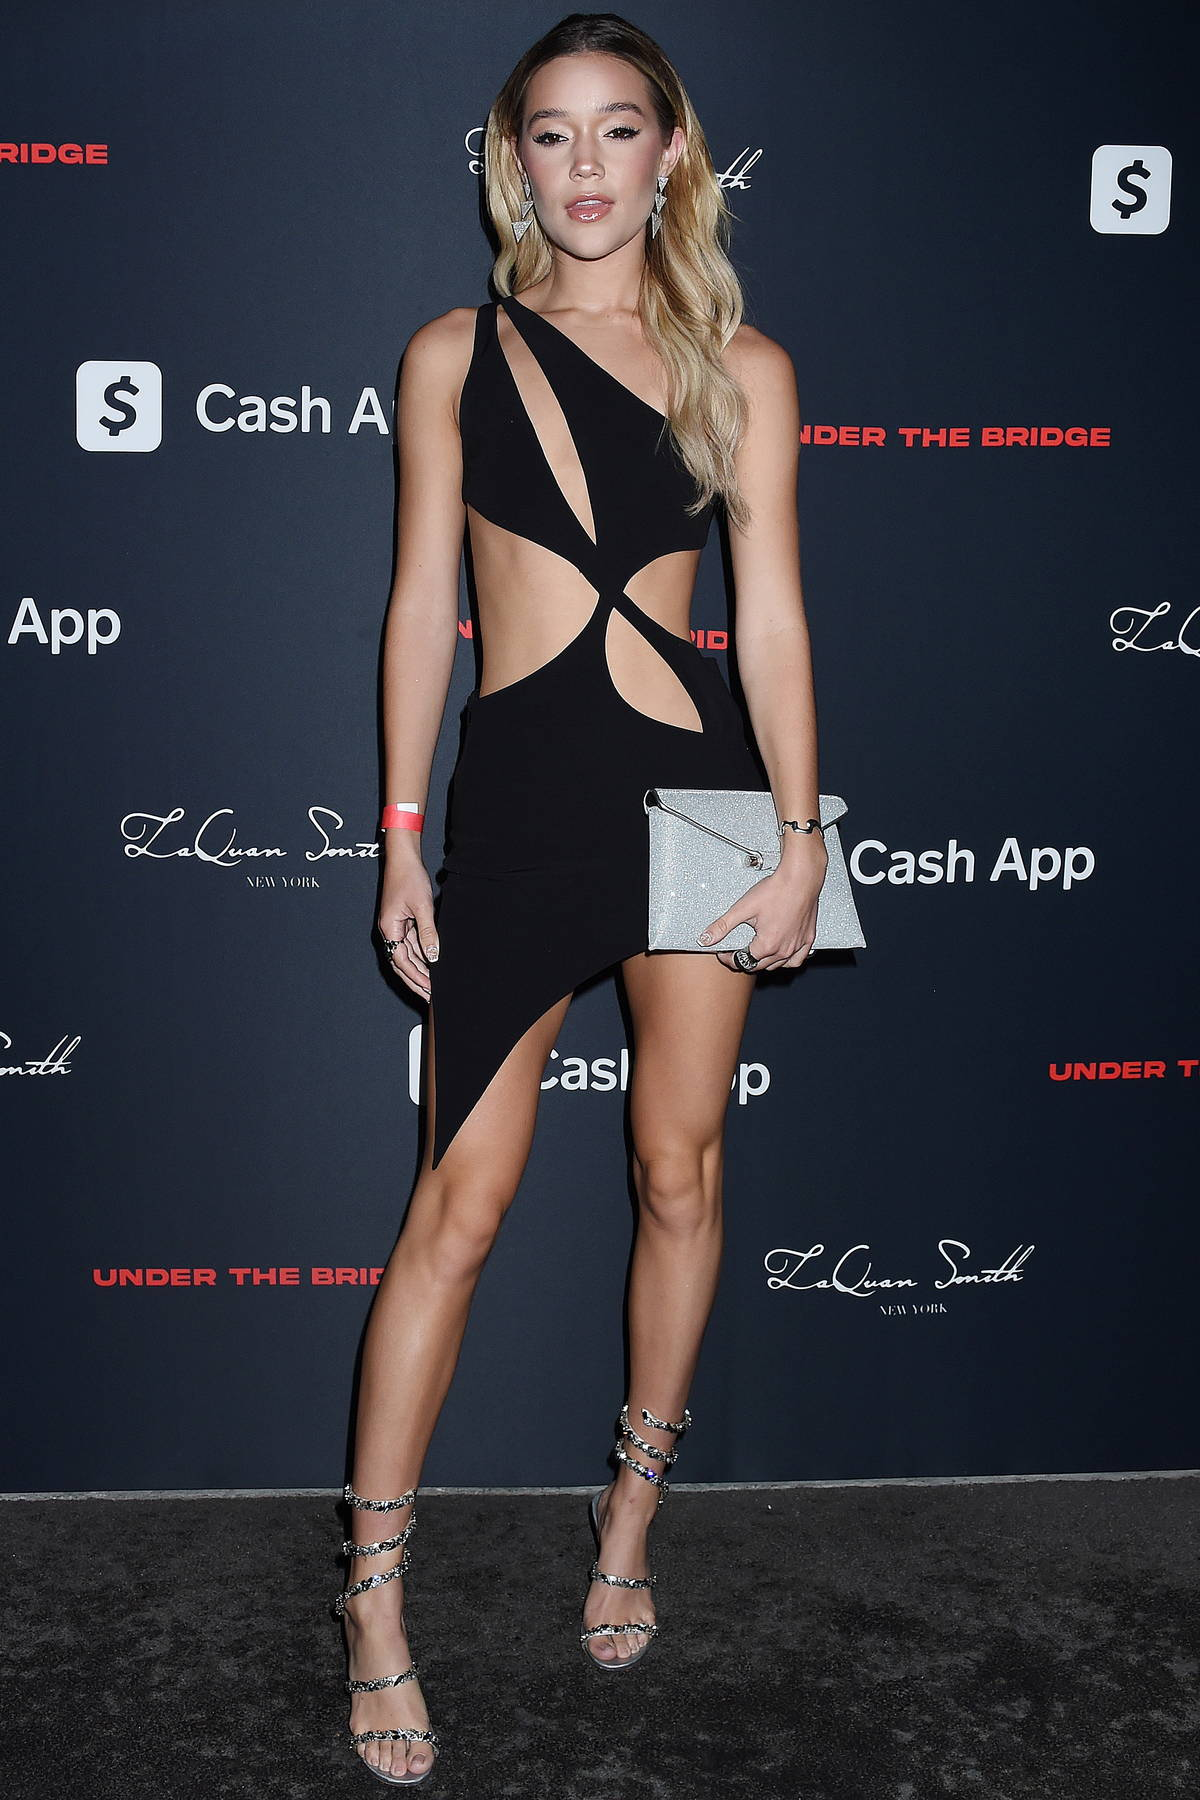 Olivia Ponton attends LaQuan Smith's Met Gala after-party at Under The Bridge in New York City